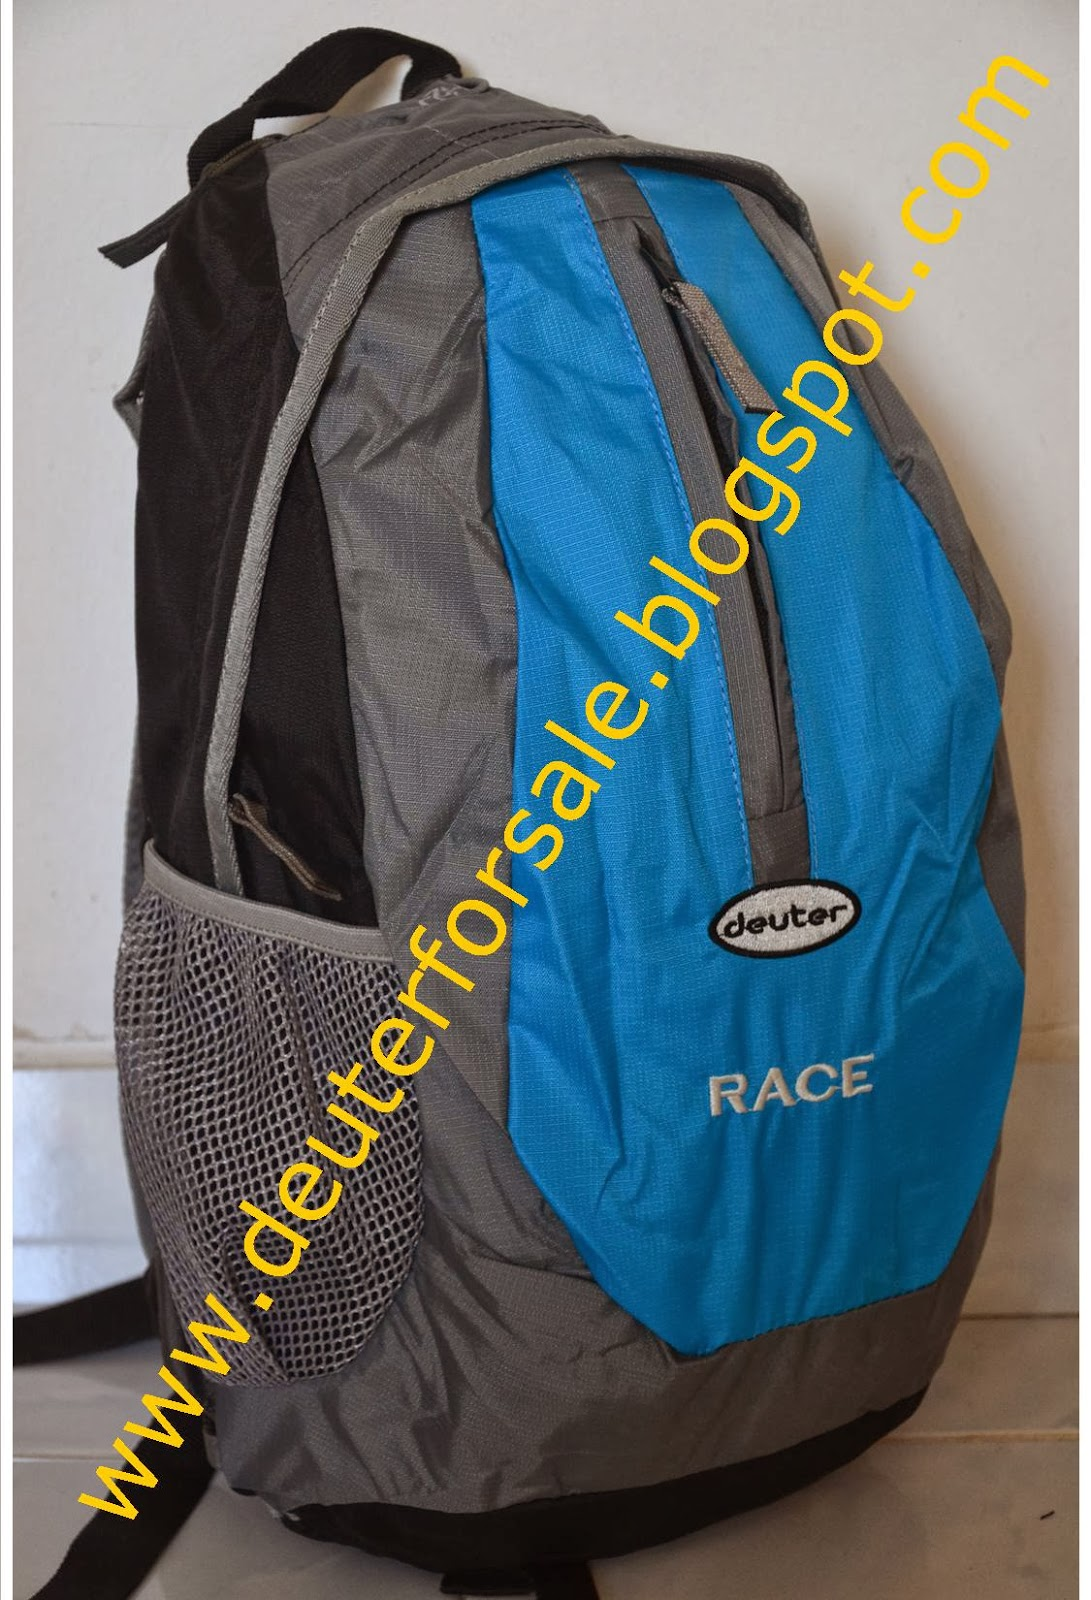 http://deuterforsale.blogspot.com/2009/06/daypack-deuter-race-black-available-2.html